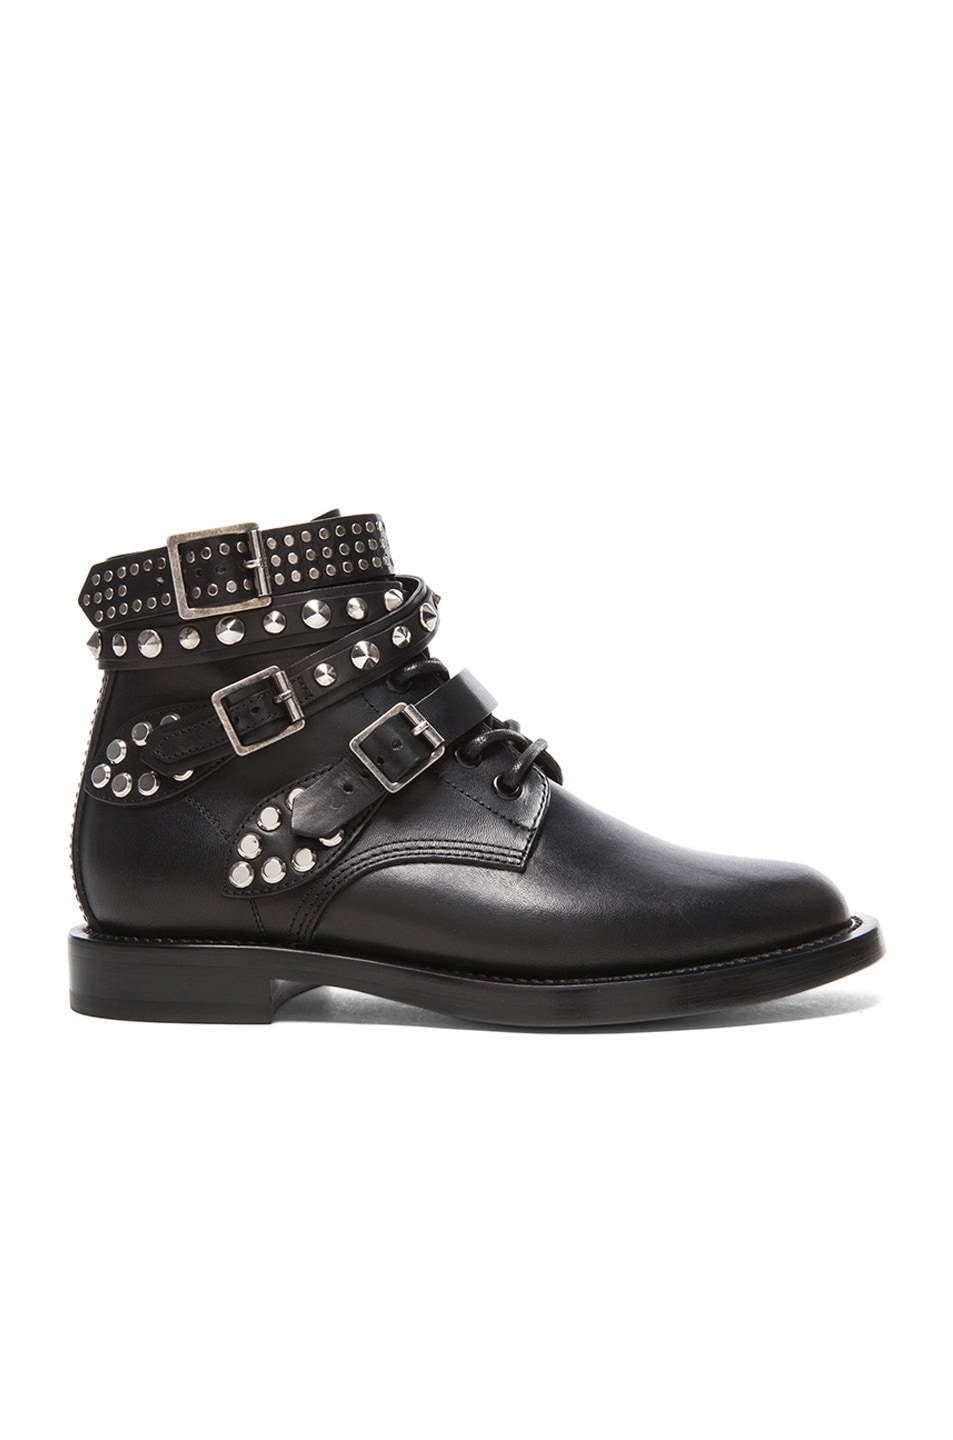 Image 1 of Saint Laurent Rangers Studded Low Combat Boots in Black